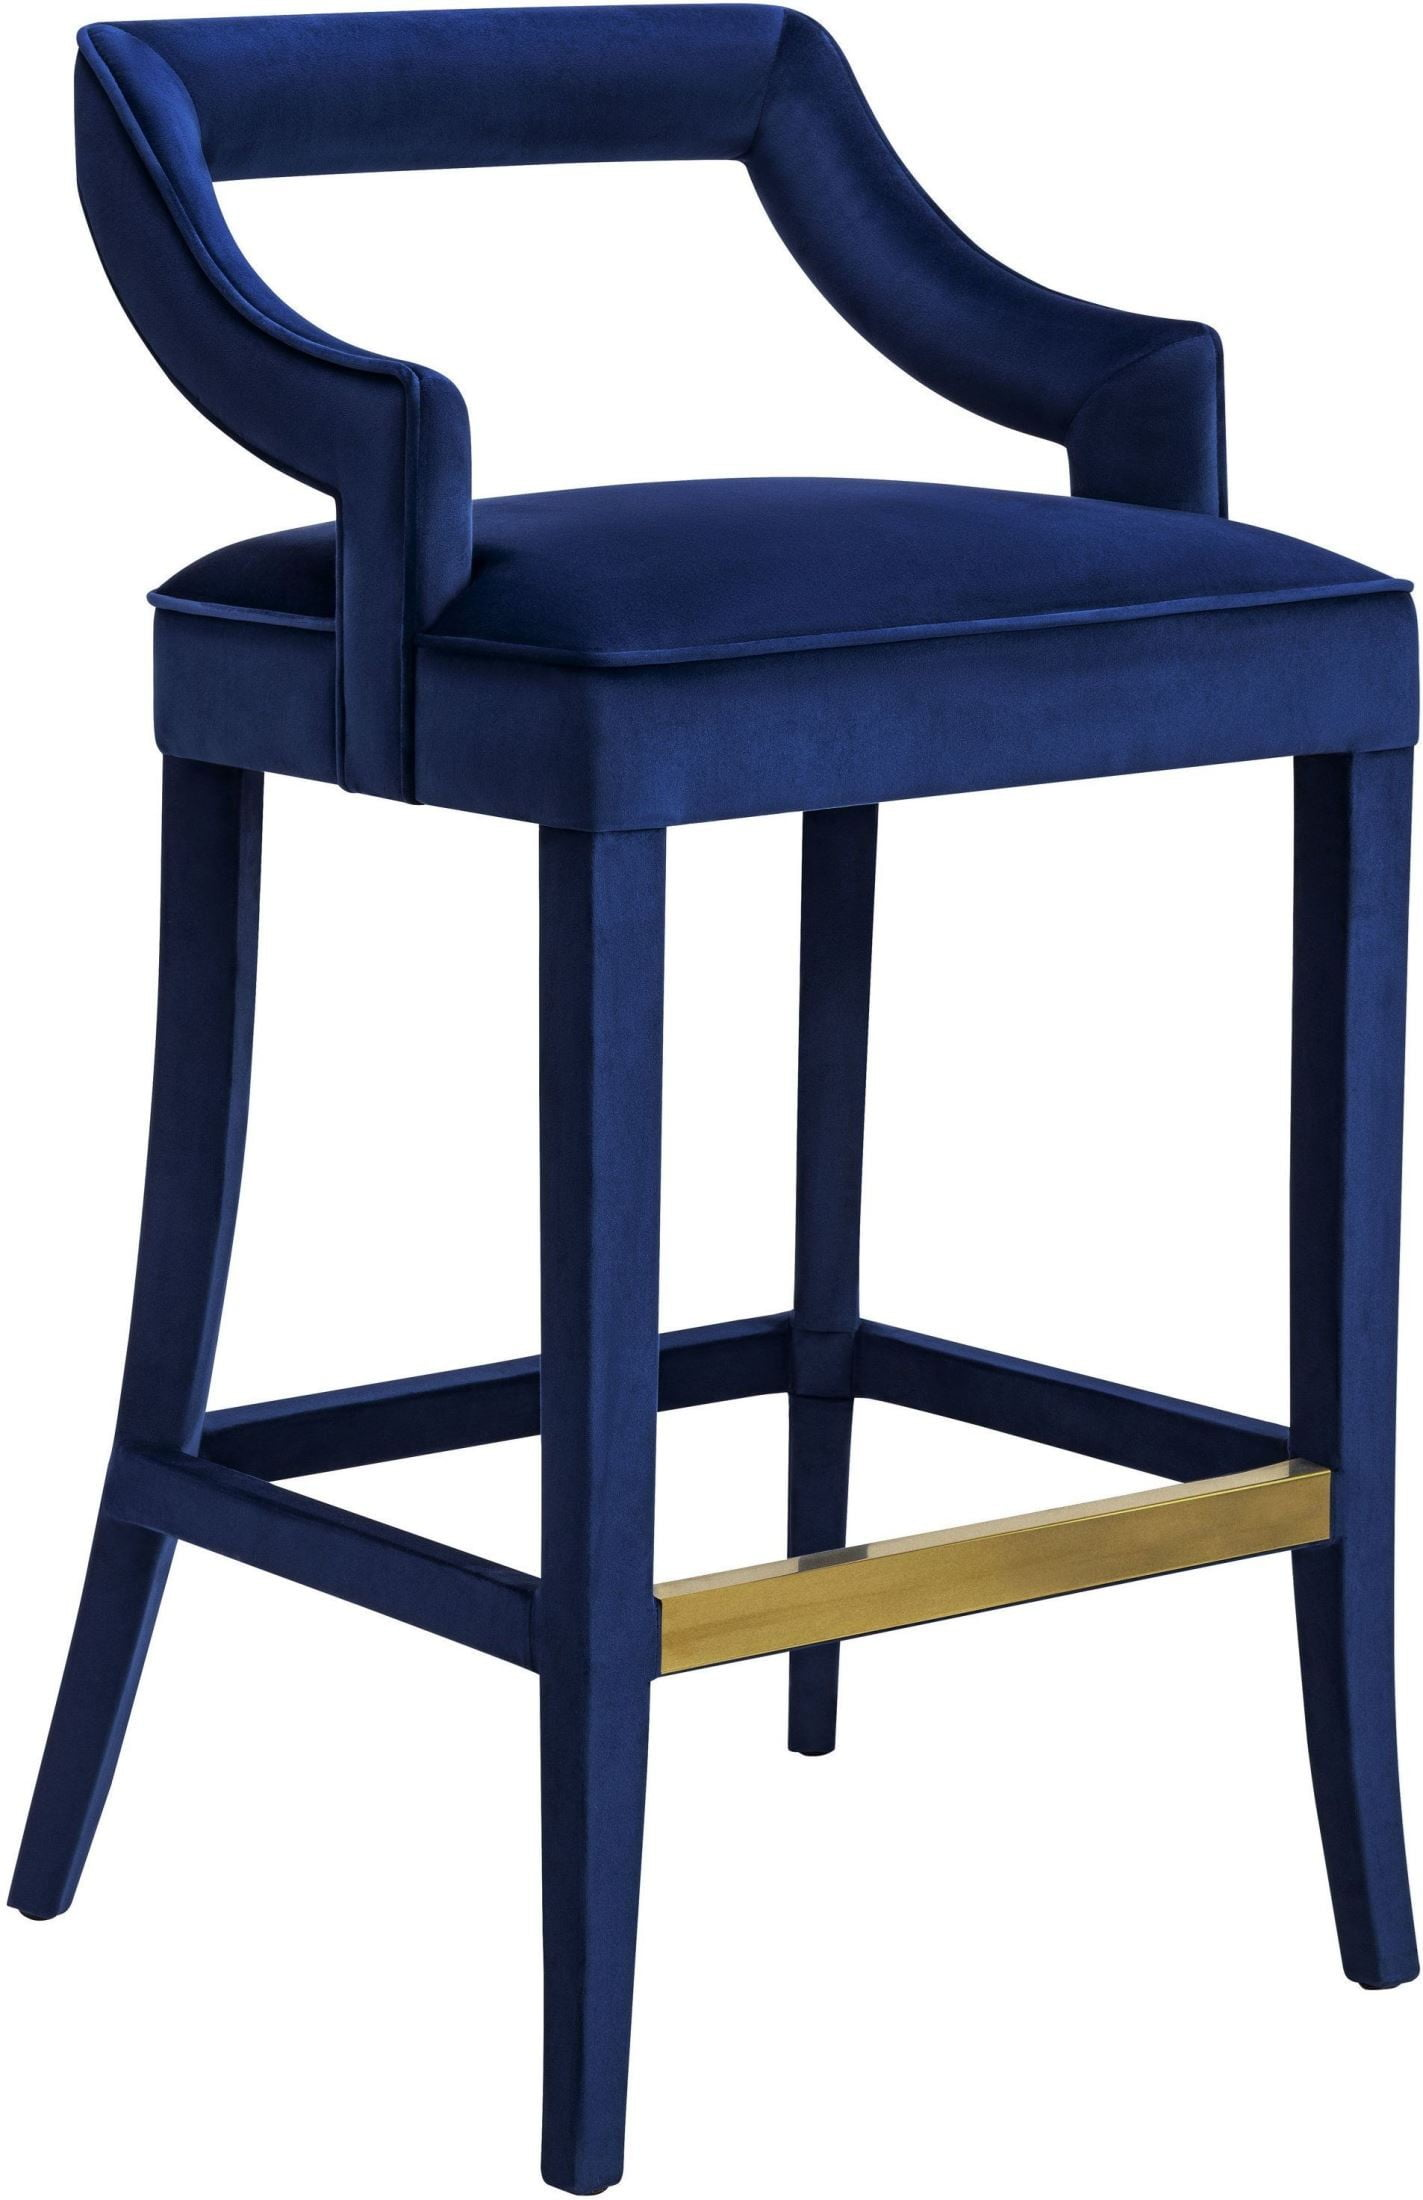 Tiffany Navy Velvet Counter Stool Set of 2 from TOV